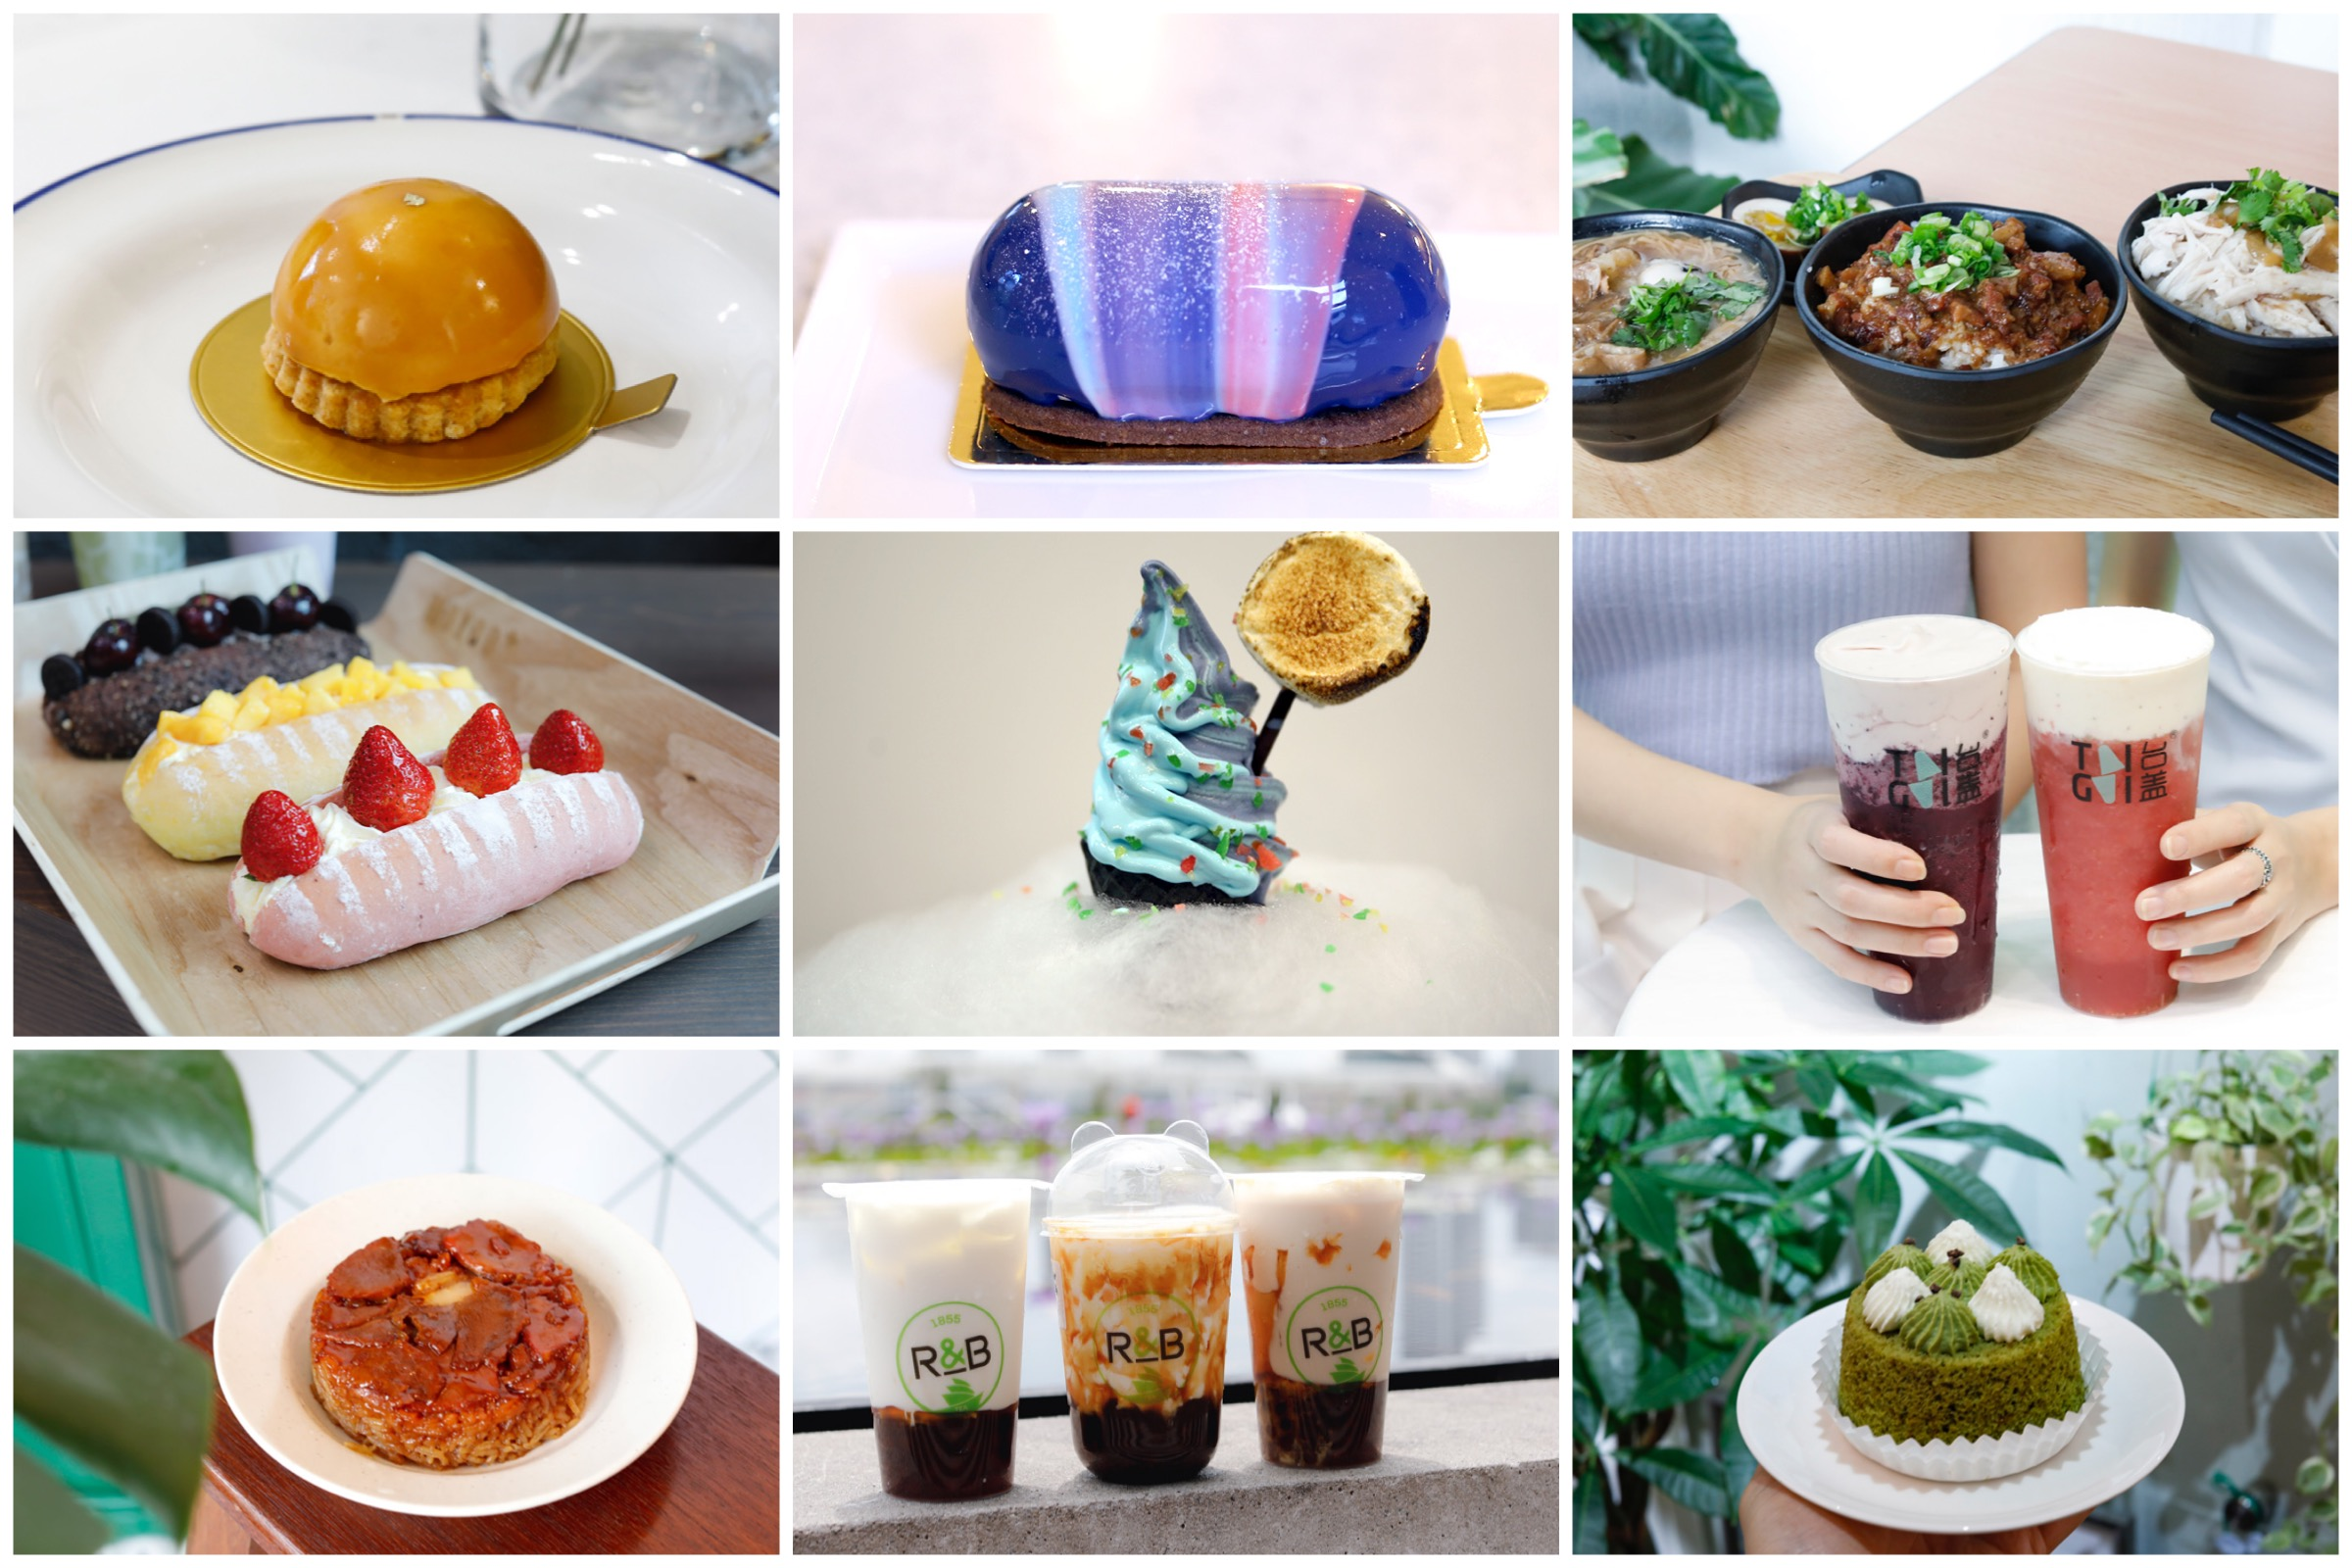 10 New Cafes In September - Blue Aqua S Soft Serve And More Bubble Tea Shops From TaiGai, MuYoo+ To R&B 巡茶